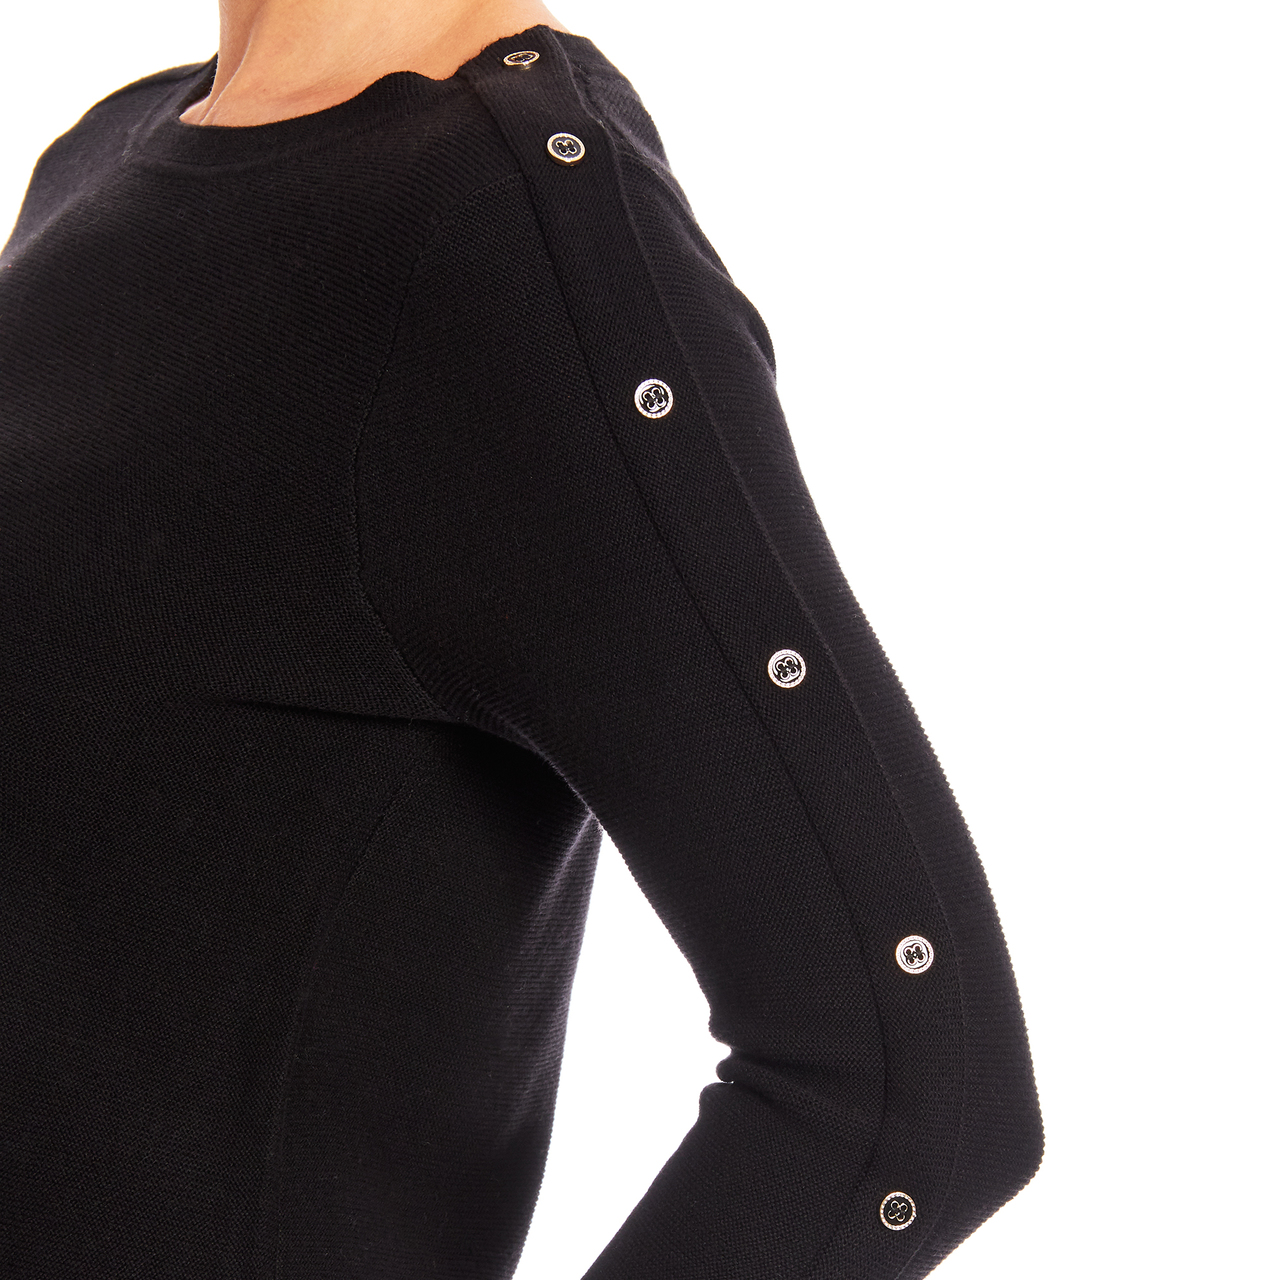 3/4 Sleeve Novelty Button Sleeve Crew Neck Textured Sweater in Black